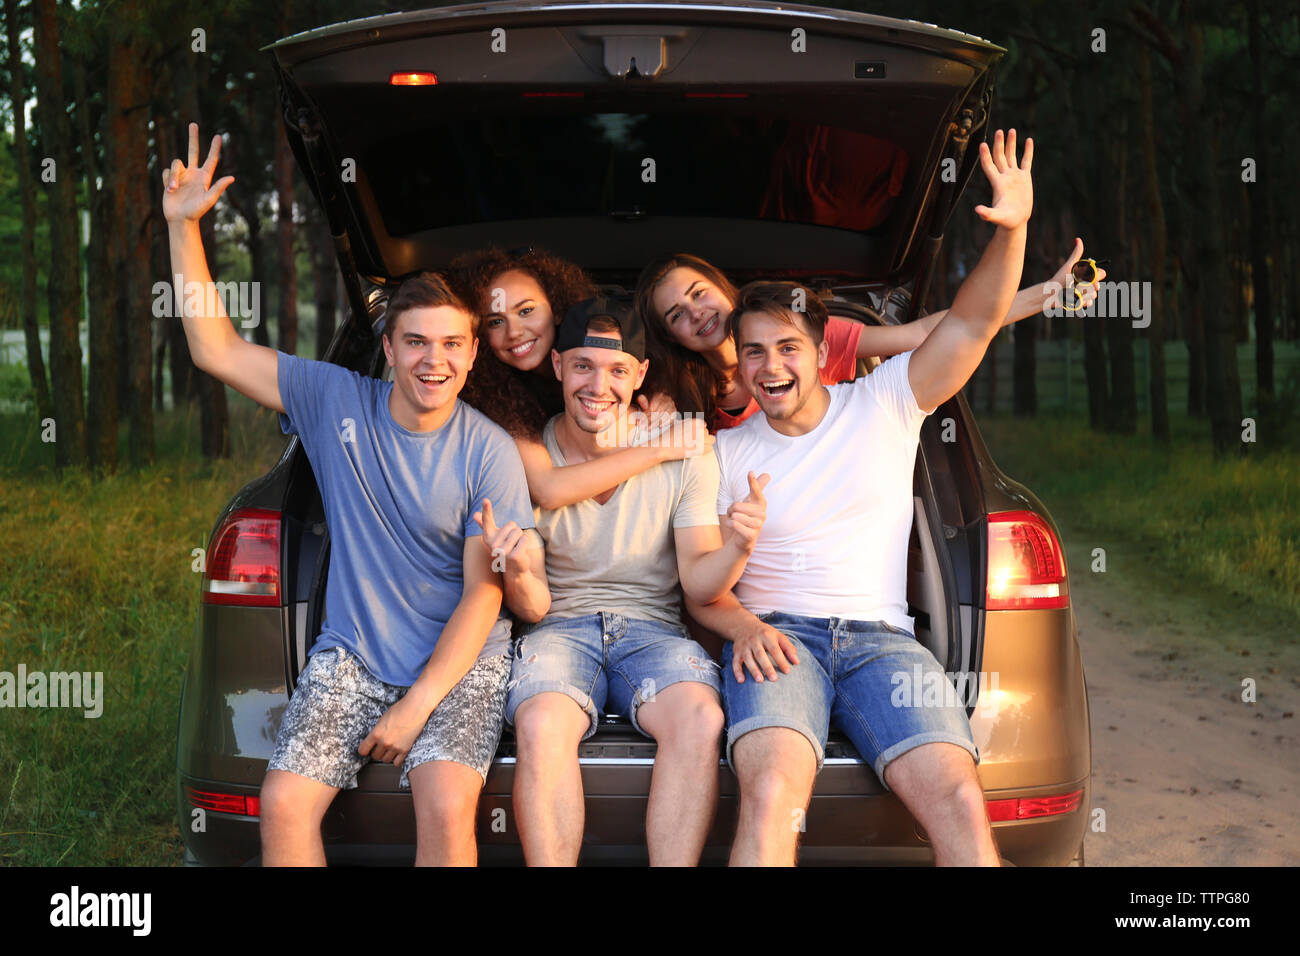 Friends sitting in a car trunk - Stock Image